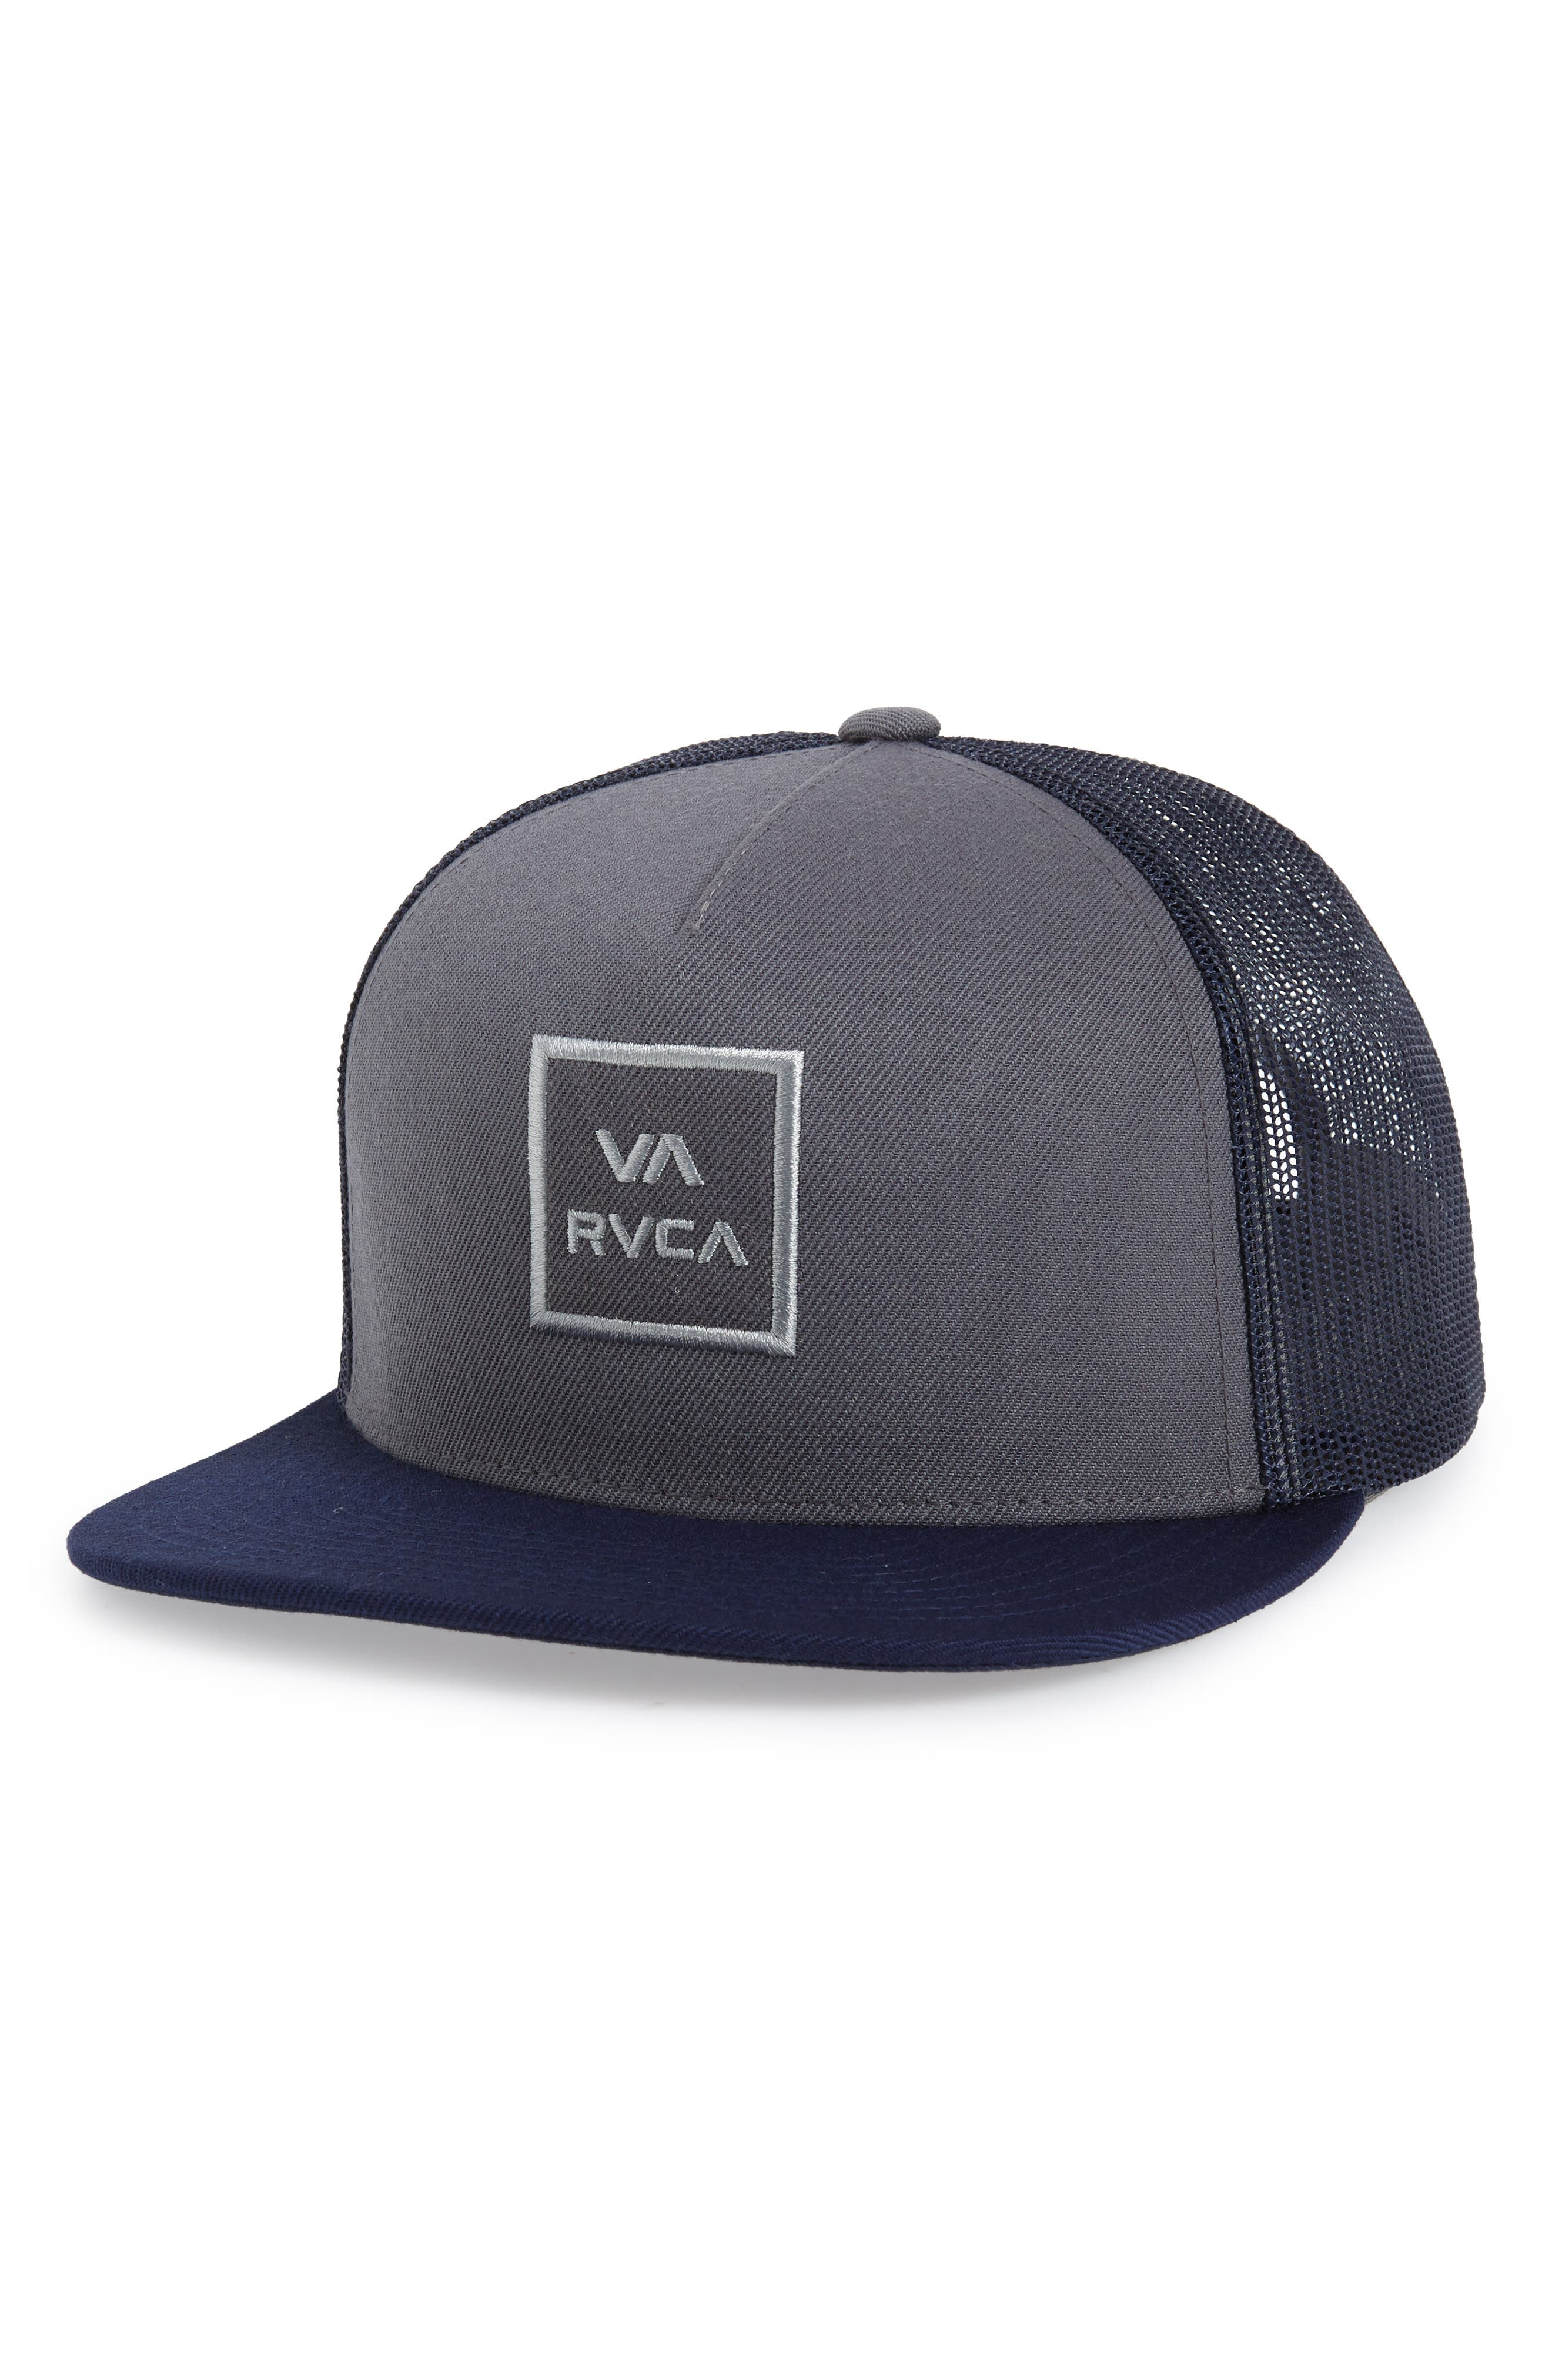 VA All the Way Trucker Hat,                         Main,                         color, BLUE/ GREY